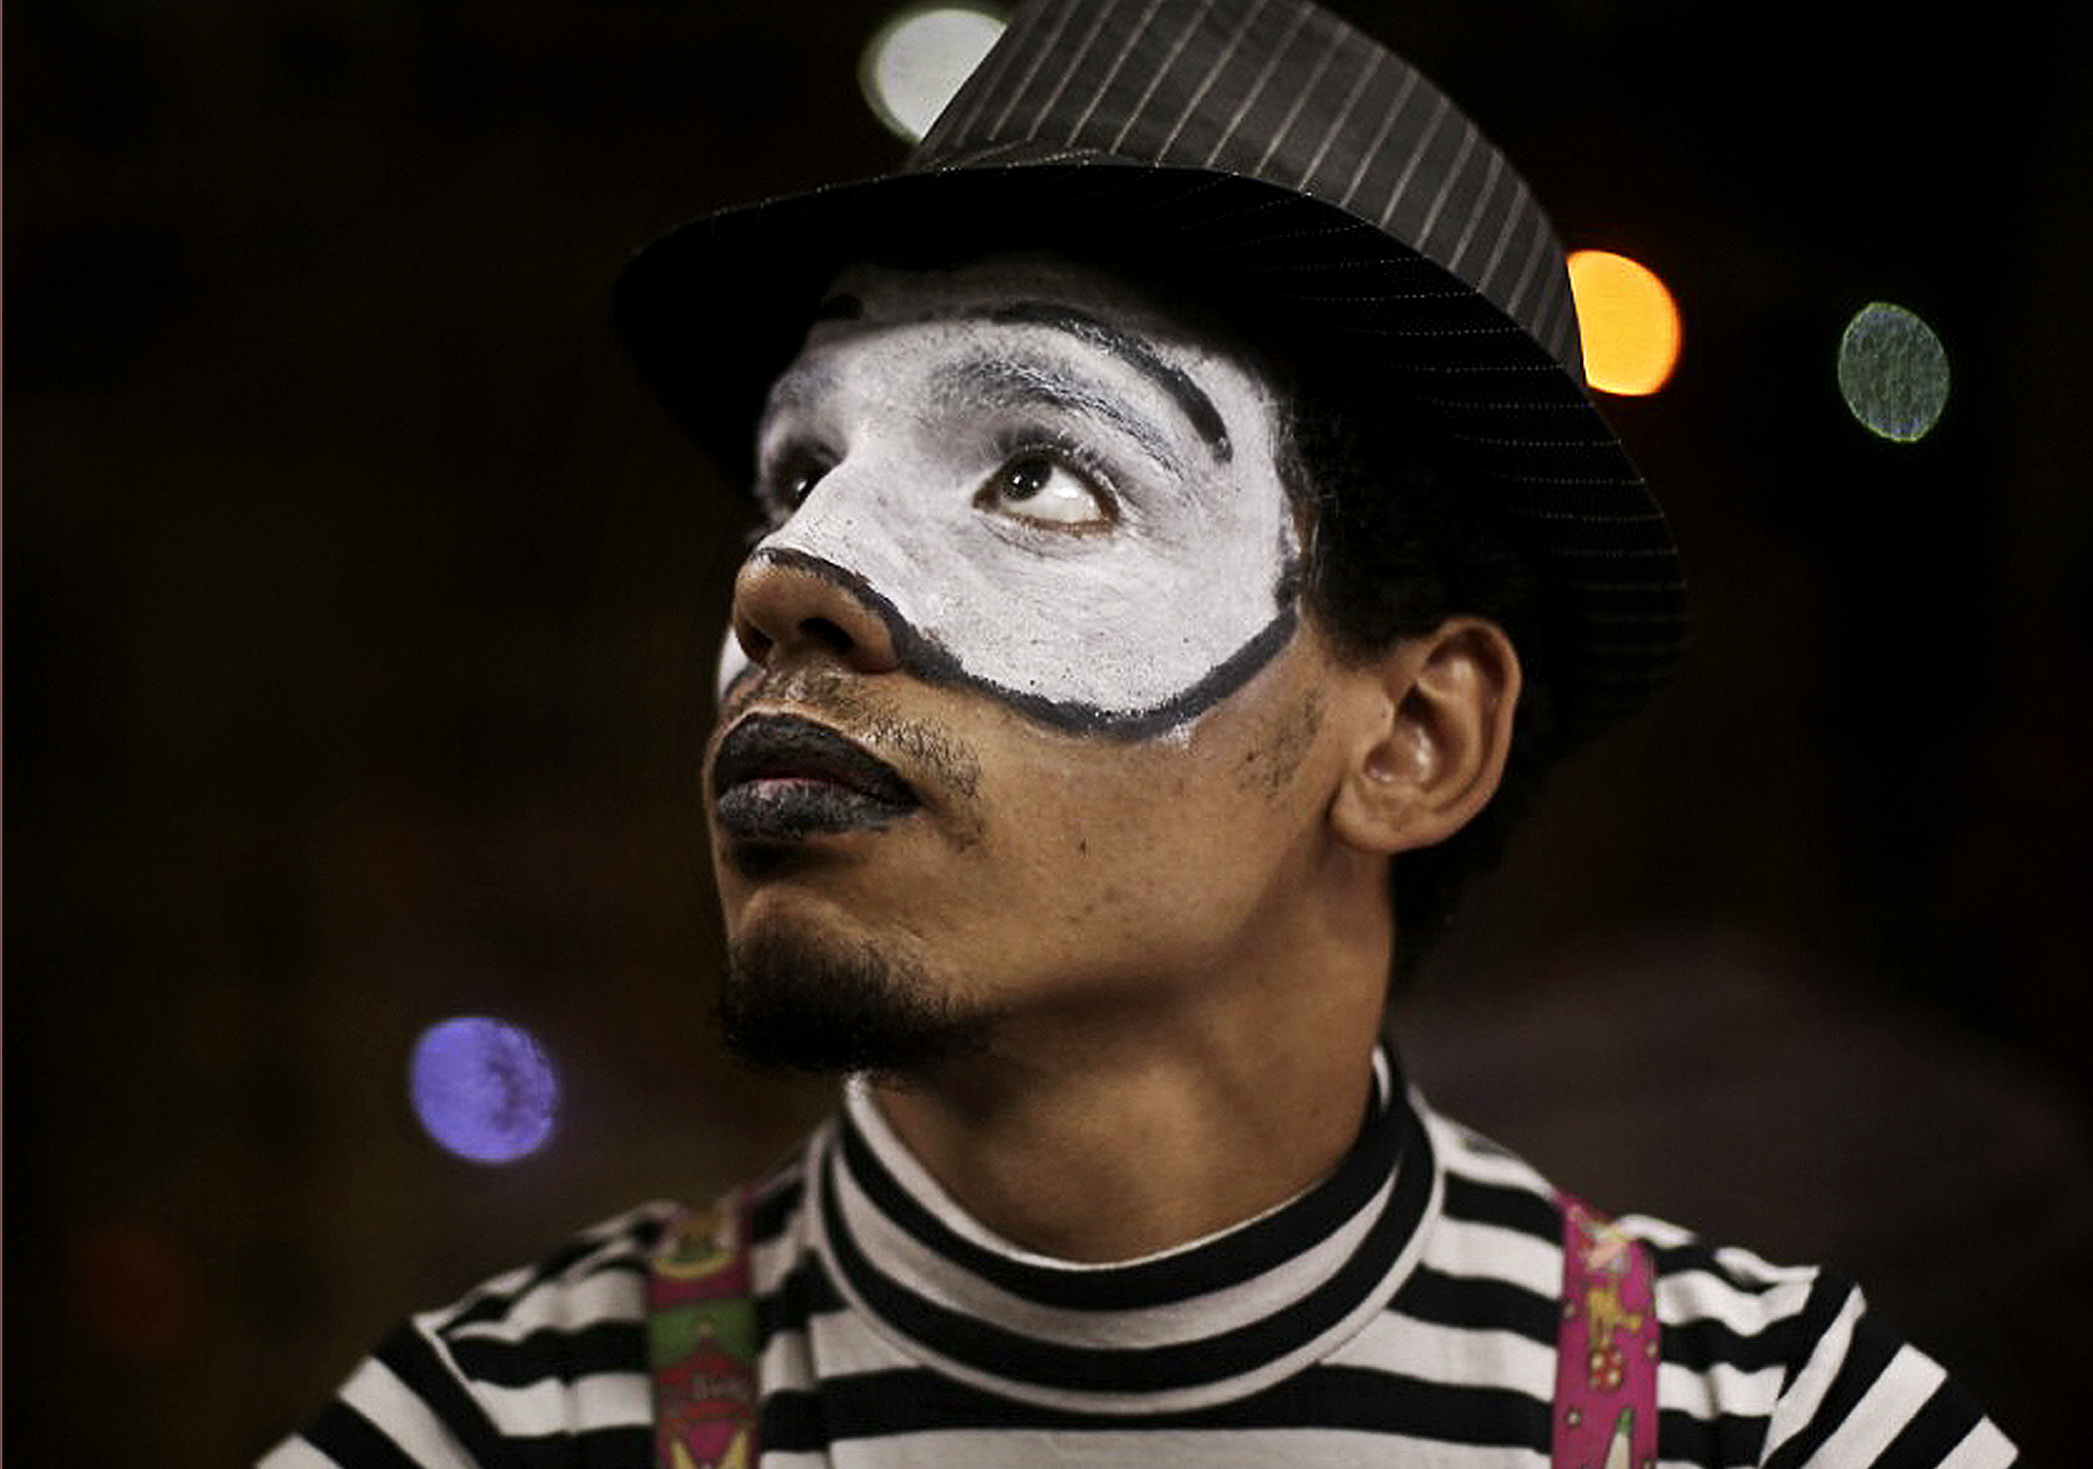 AP PHOTOS: Sheetos, the street-mime of Cairo